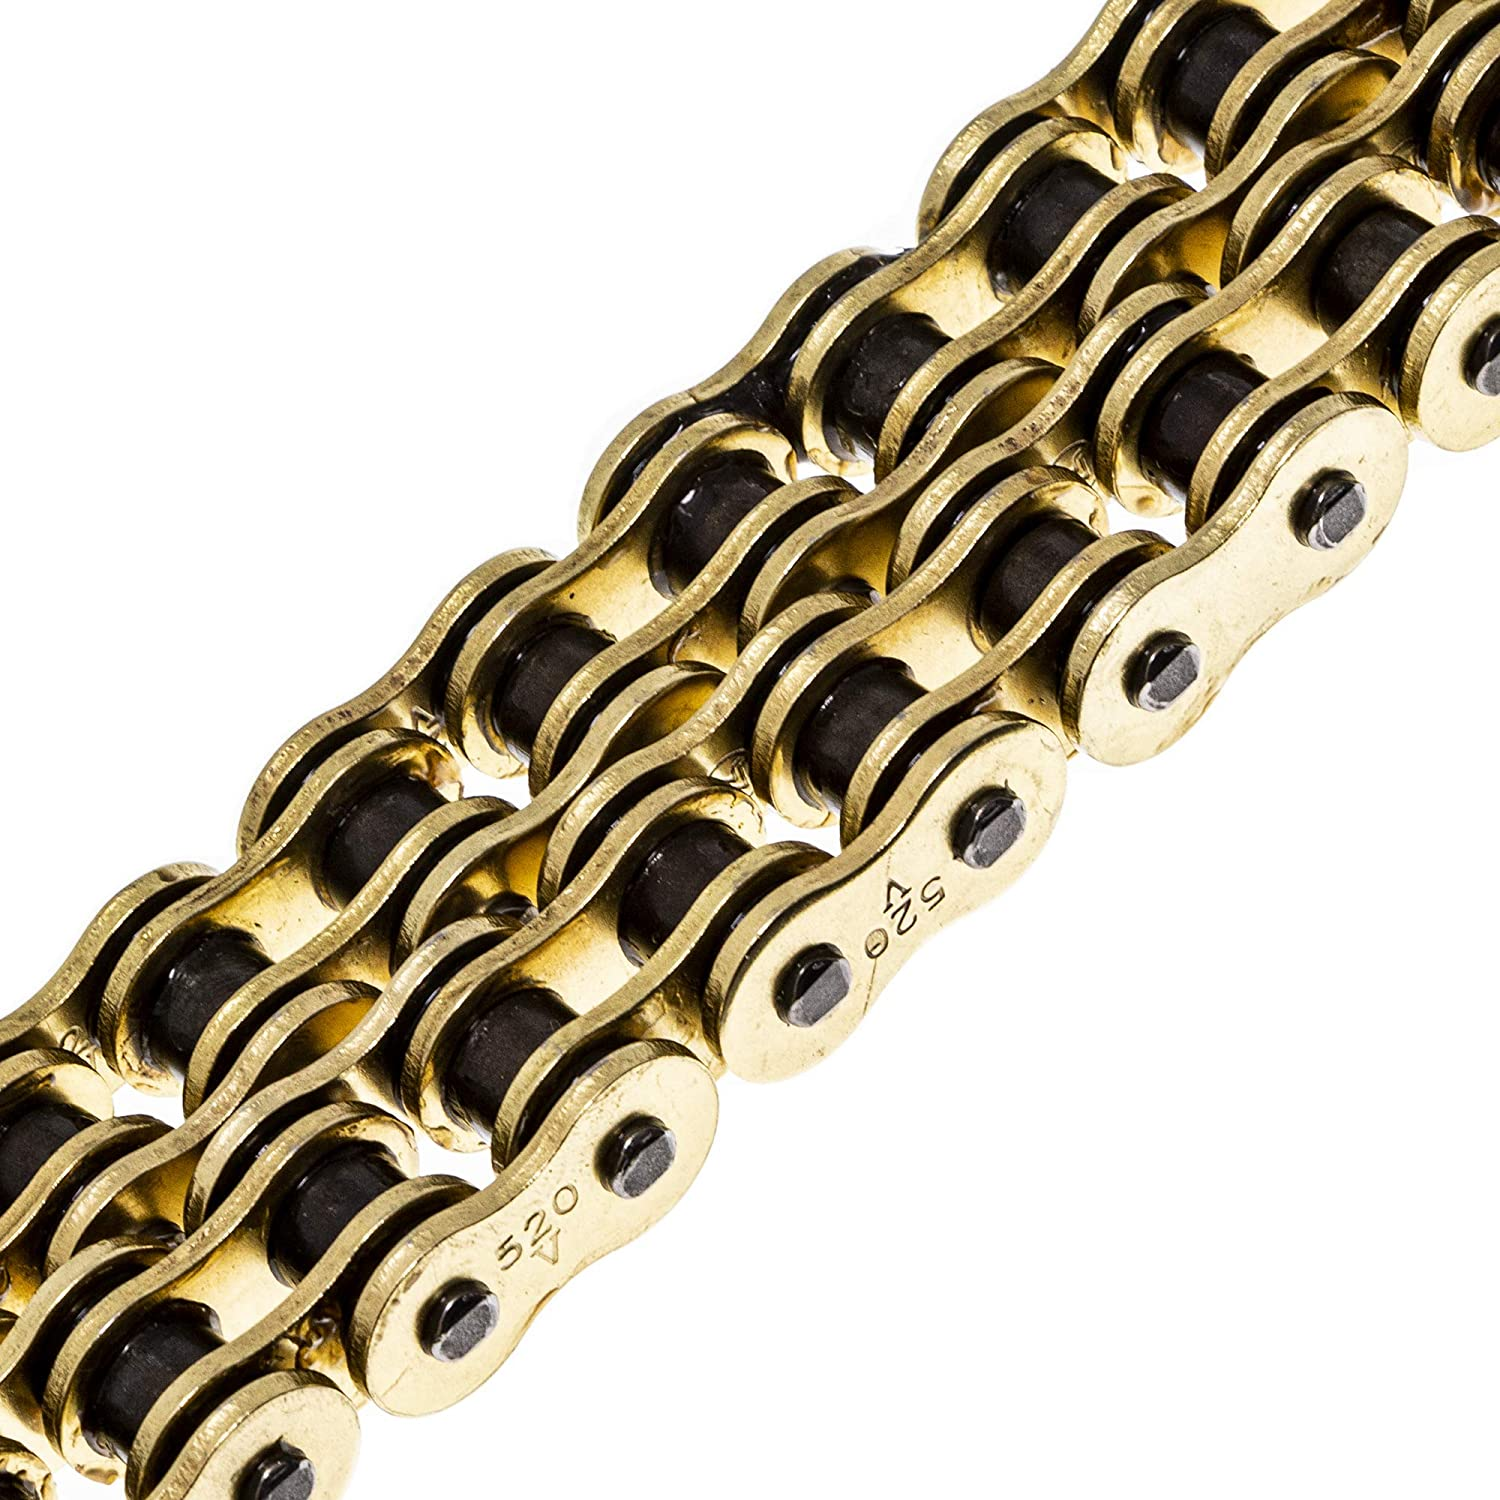 NICHE Gold 520 X-Ring Chain 122 Links With Connecting Master Link